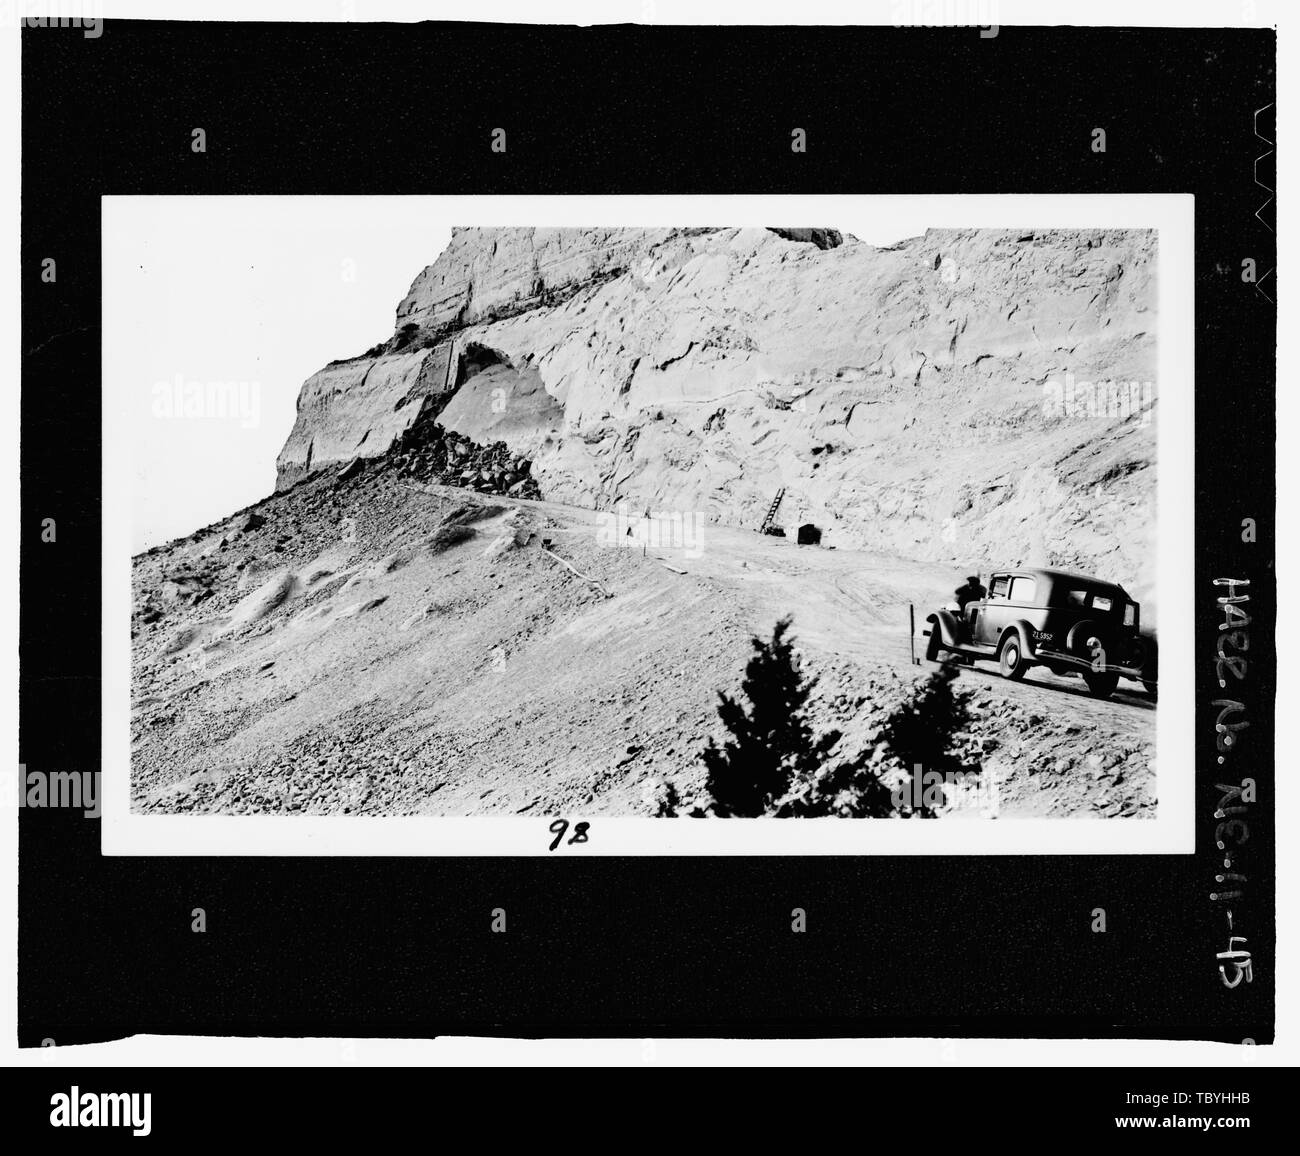 March 26, 1935 View of the big slide of several hundred cubic yards of rock, spring of 1934. Another slide occurred at this same location on May 26, 1935.  Scotts Bluff Summit Road, Gering, Scotts Bluff County, NE - Stock Image